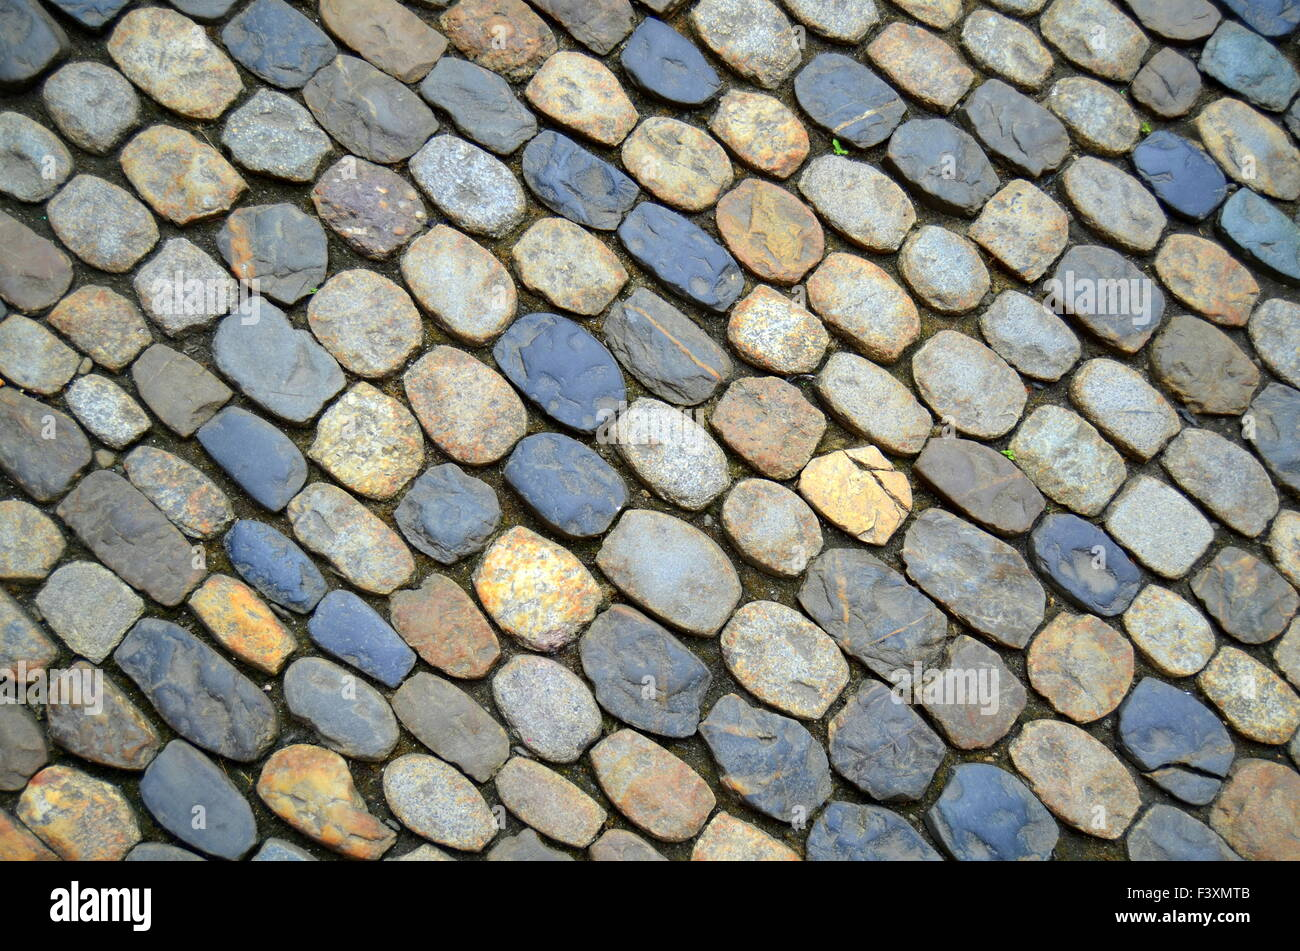 Cobbled Street Background - Stock Image